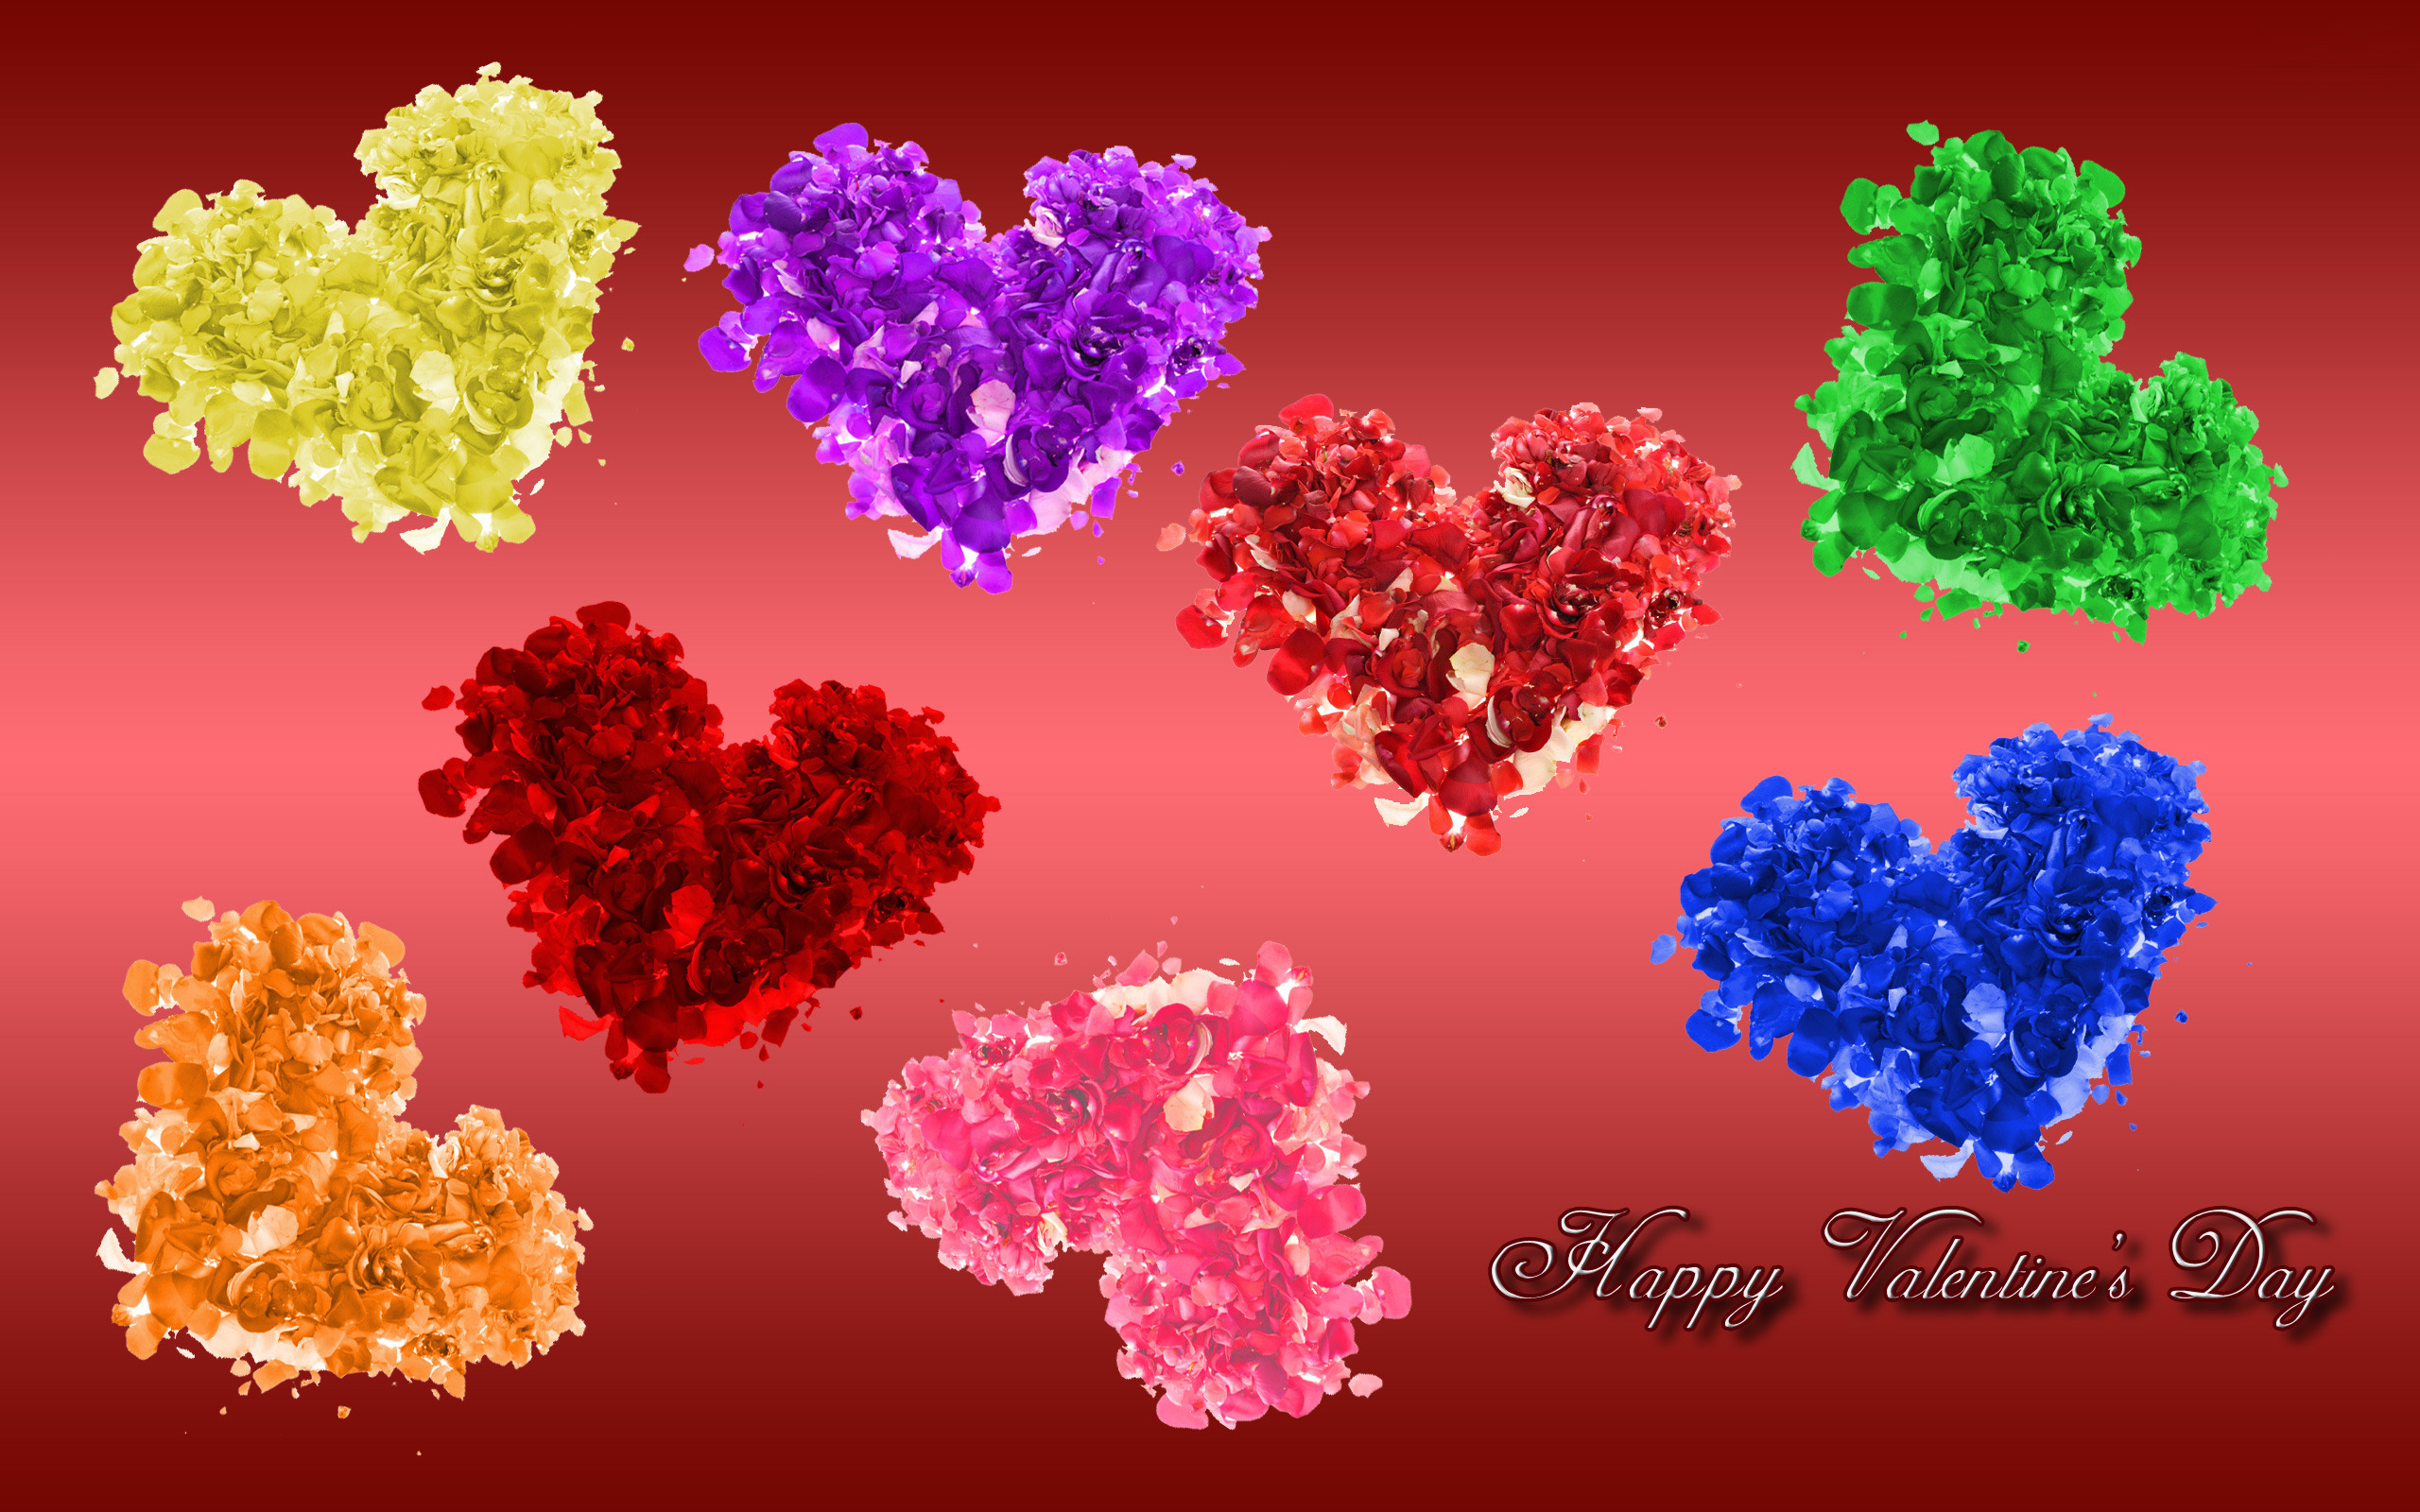 Valentines Day Colorful Wallpaper